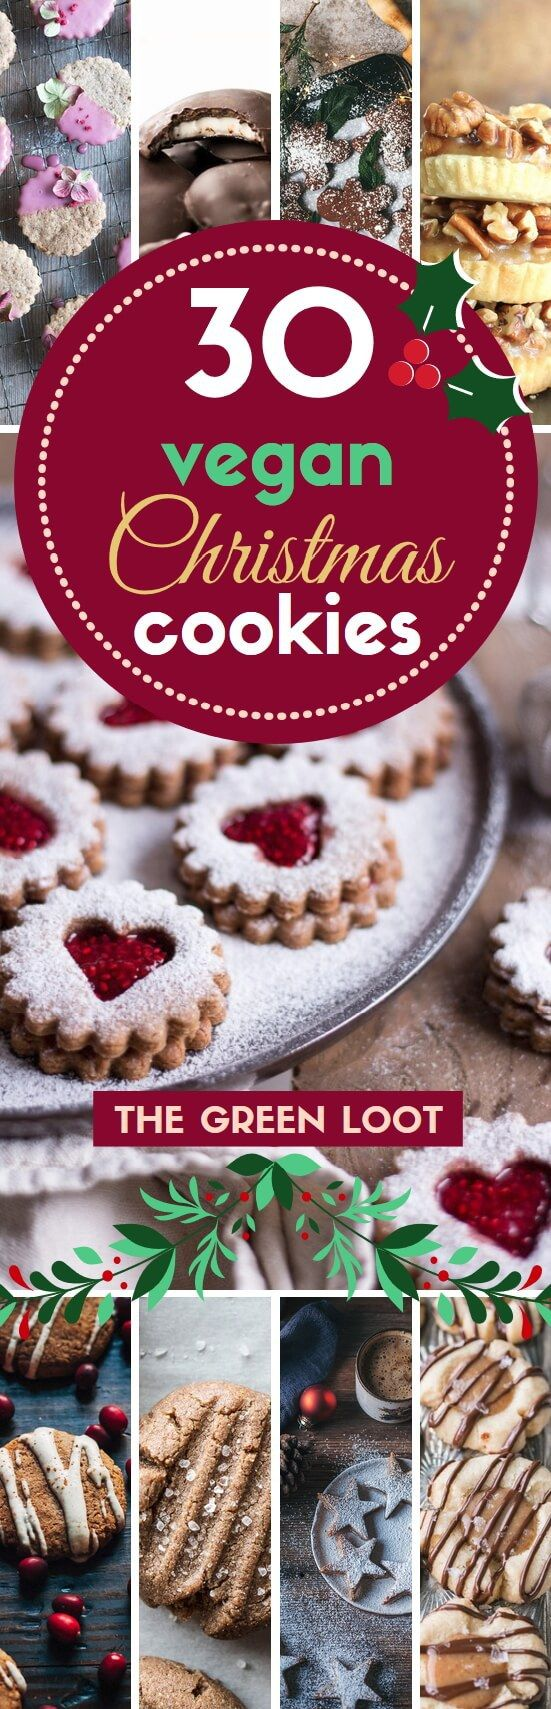 We have collected the absolute best, most delicious and divine vegan X-mas cookies, that are easy and even healthy! Enjoy these finger-licking yummies! See our best vegan Christmas desserts/treats list too! Happy Holidays!